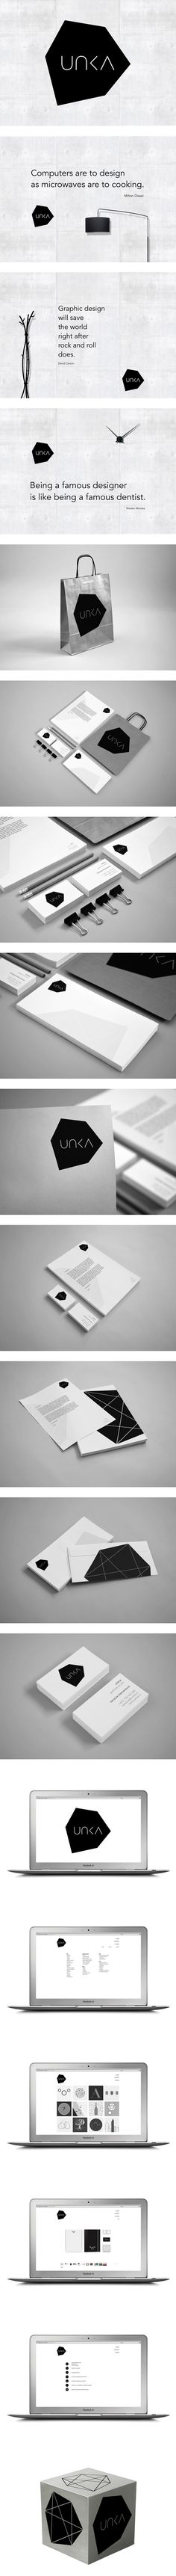 UNKA by Ven Klement, via Behance #identity #packaging #branding #marketing PD